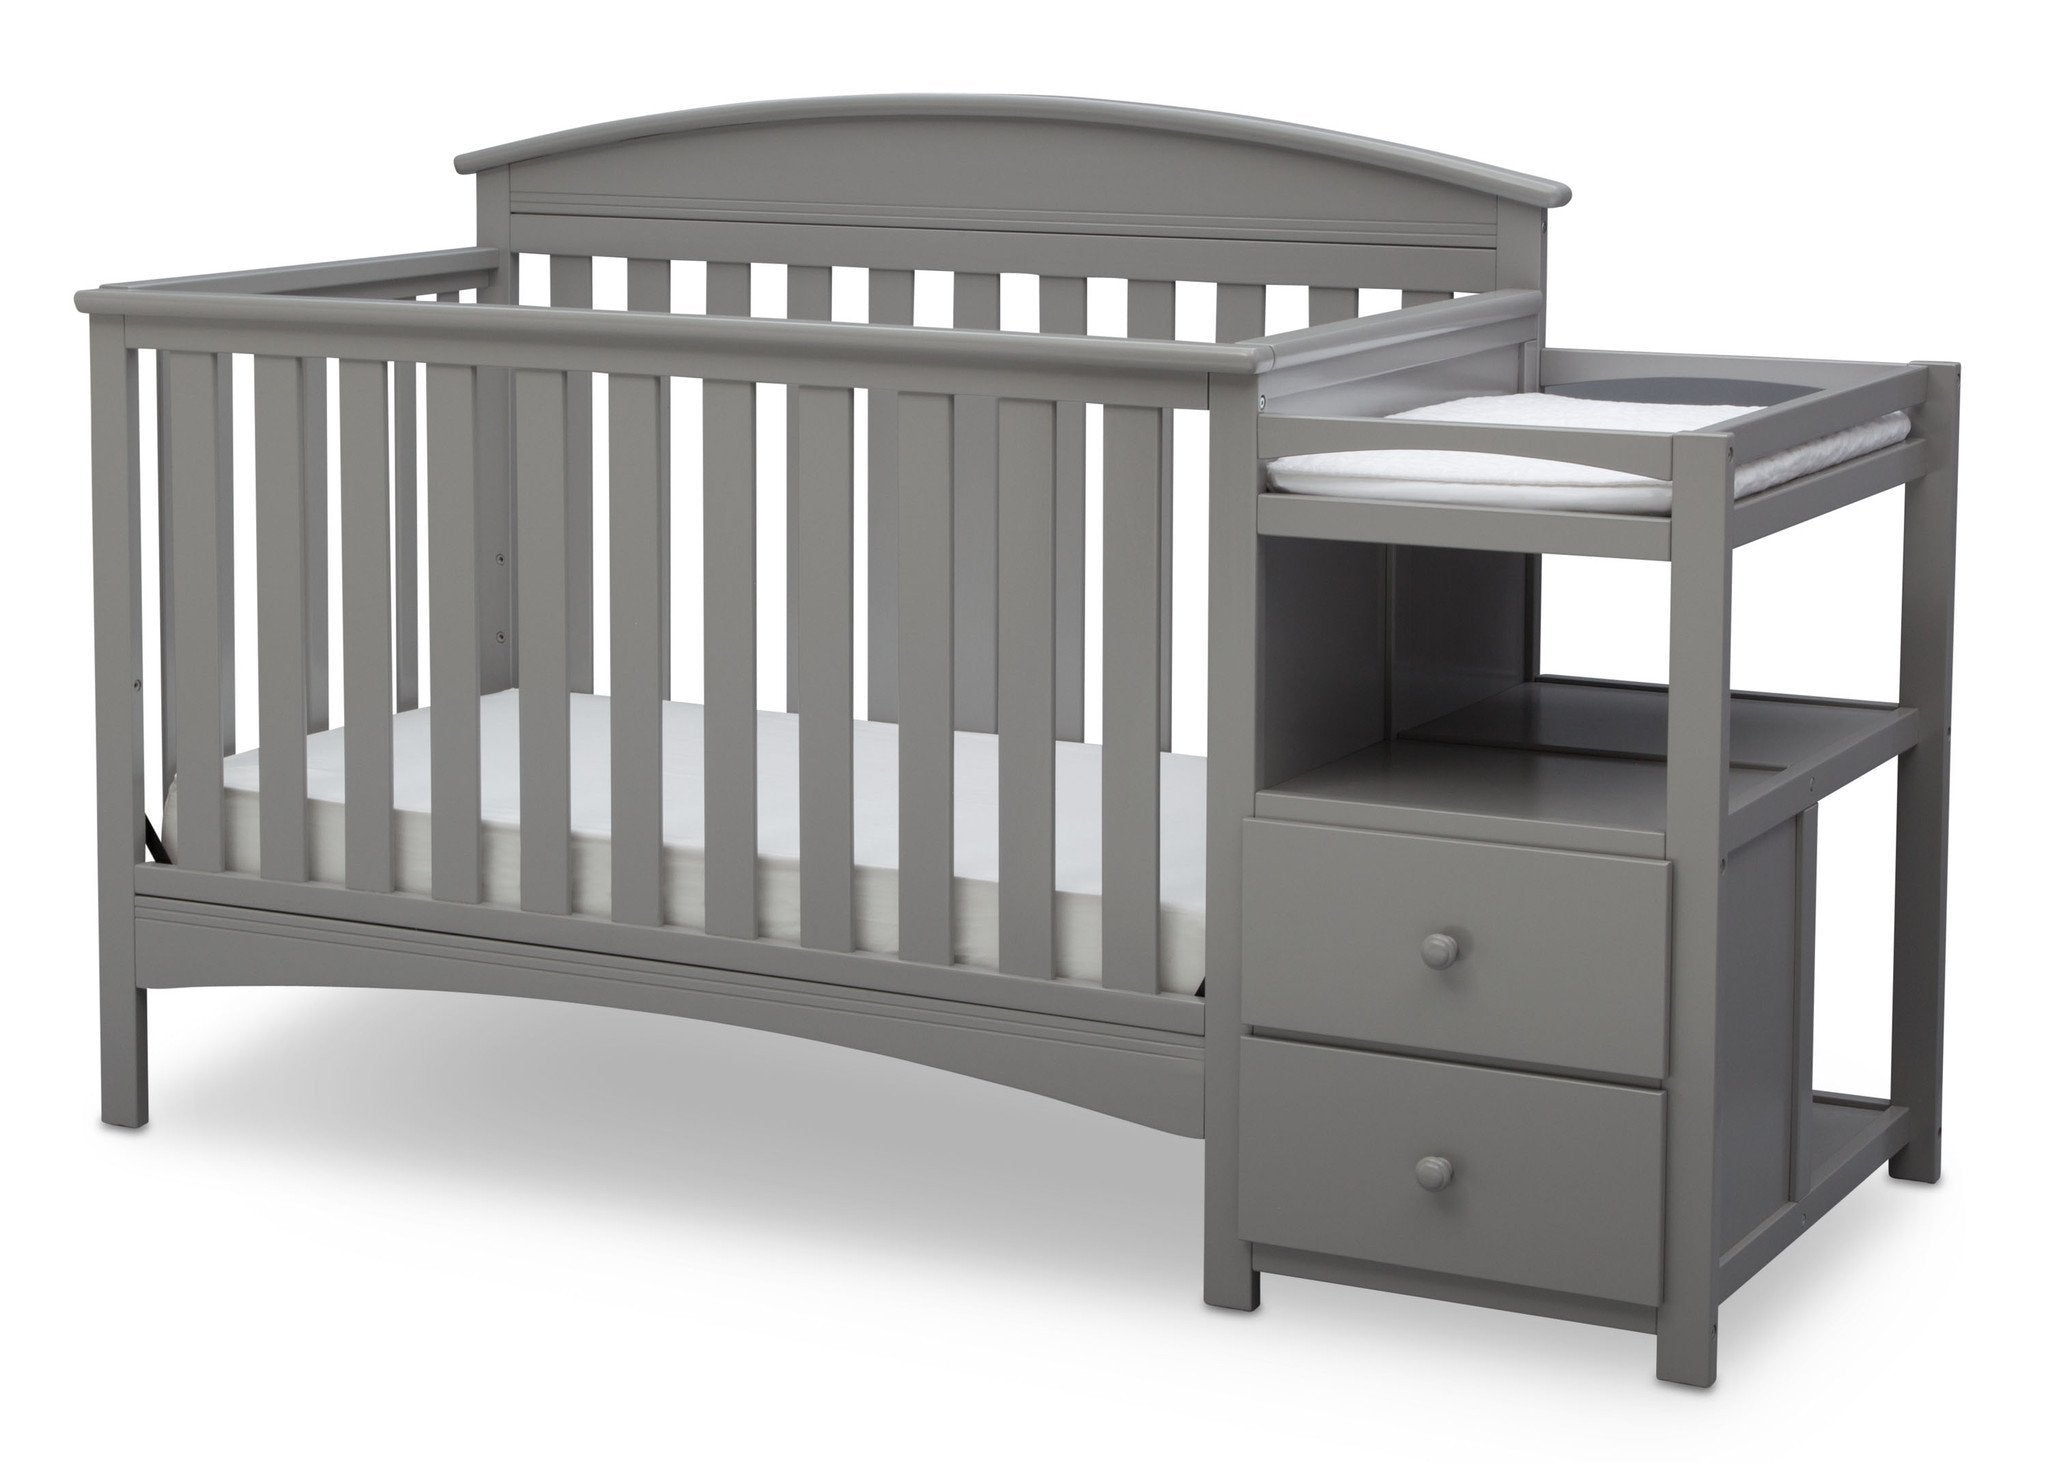 Delta Children Grey (026) Abby Crib N Changer, Left View a3a